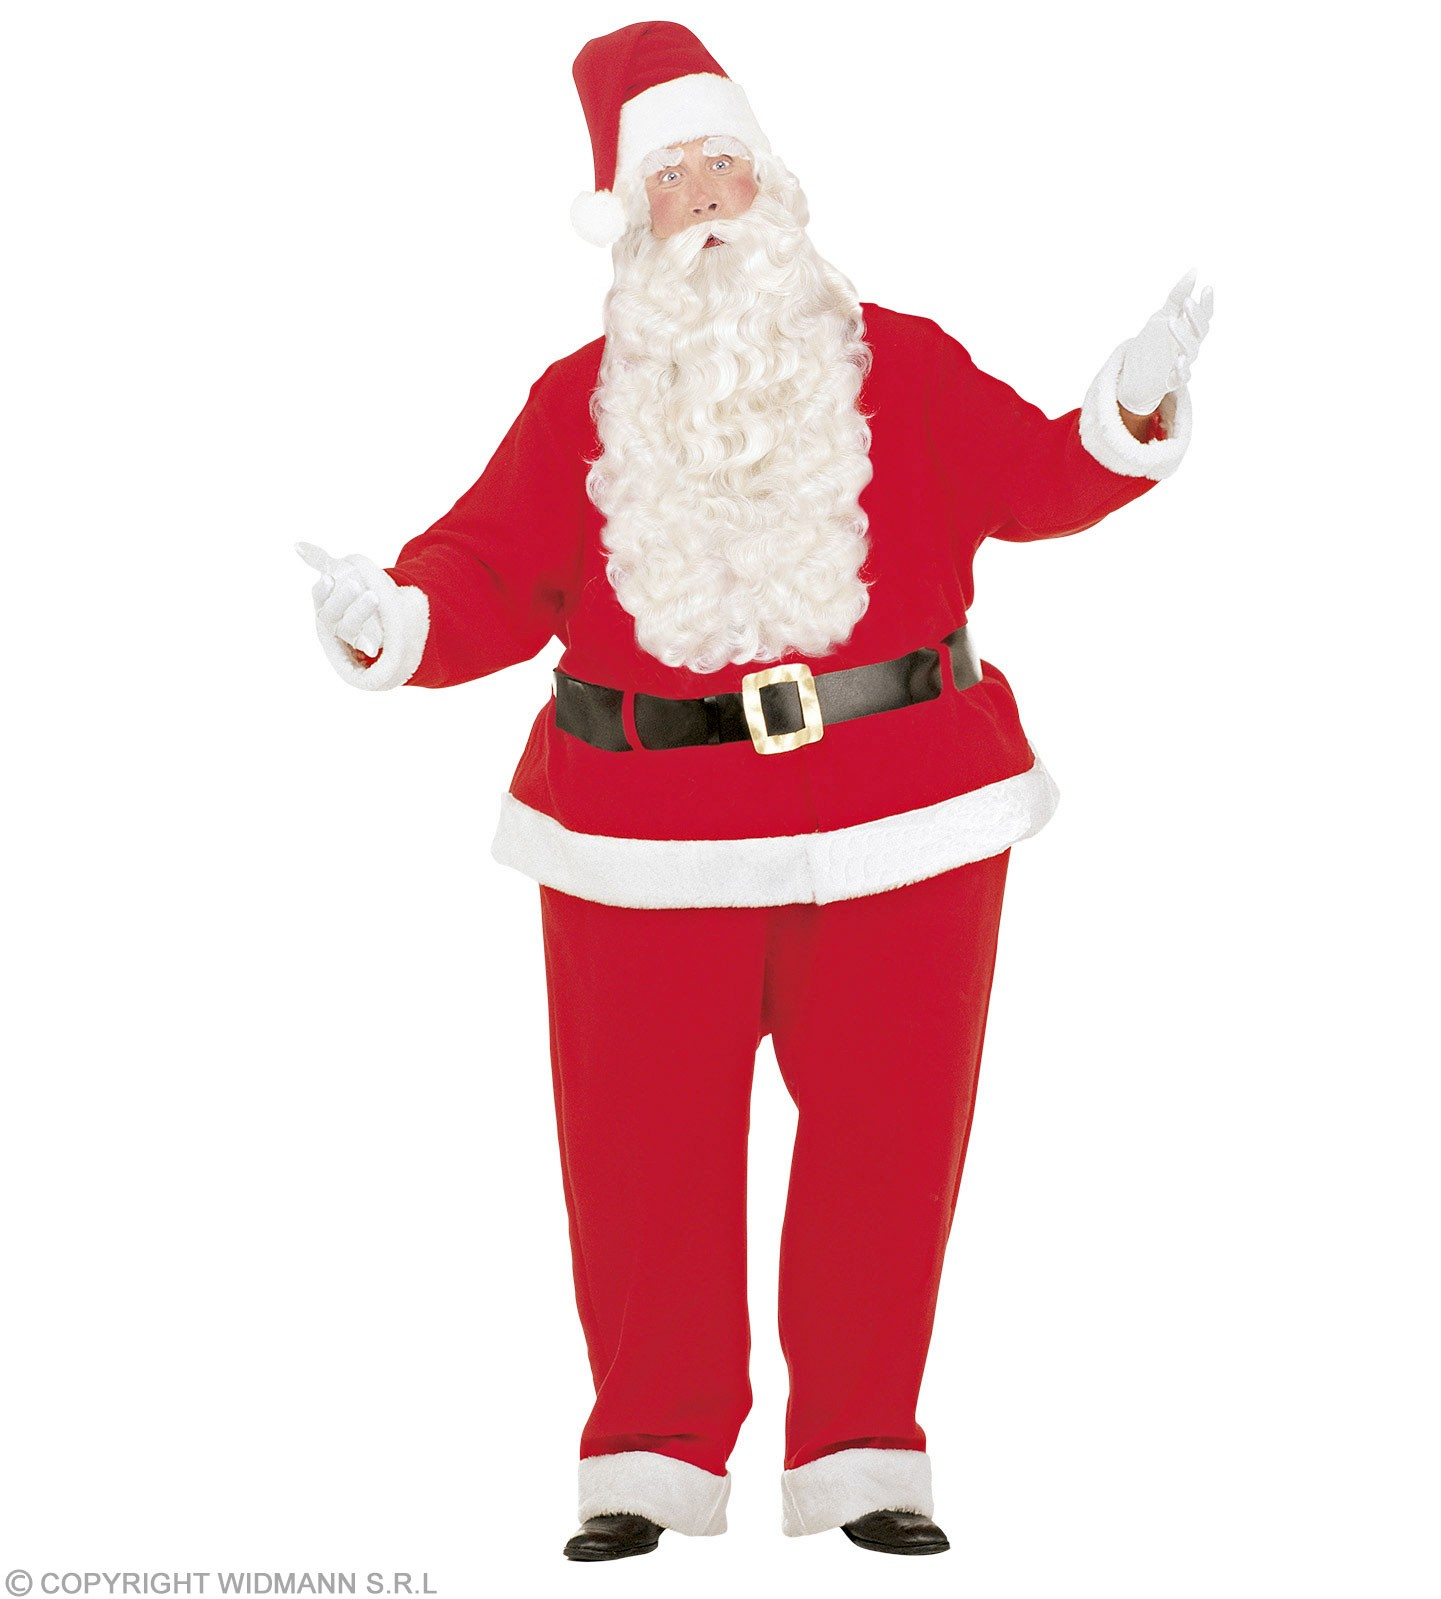 Fat Santa Claus Costume Costume Mens Size 40-44 M (Christmas)